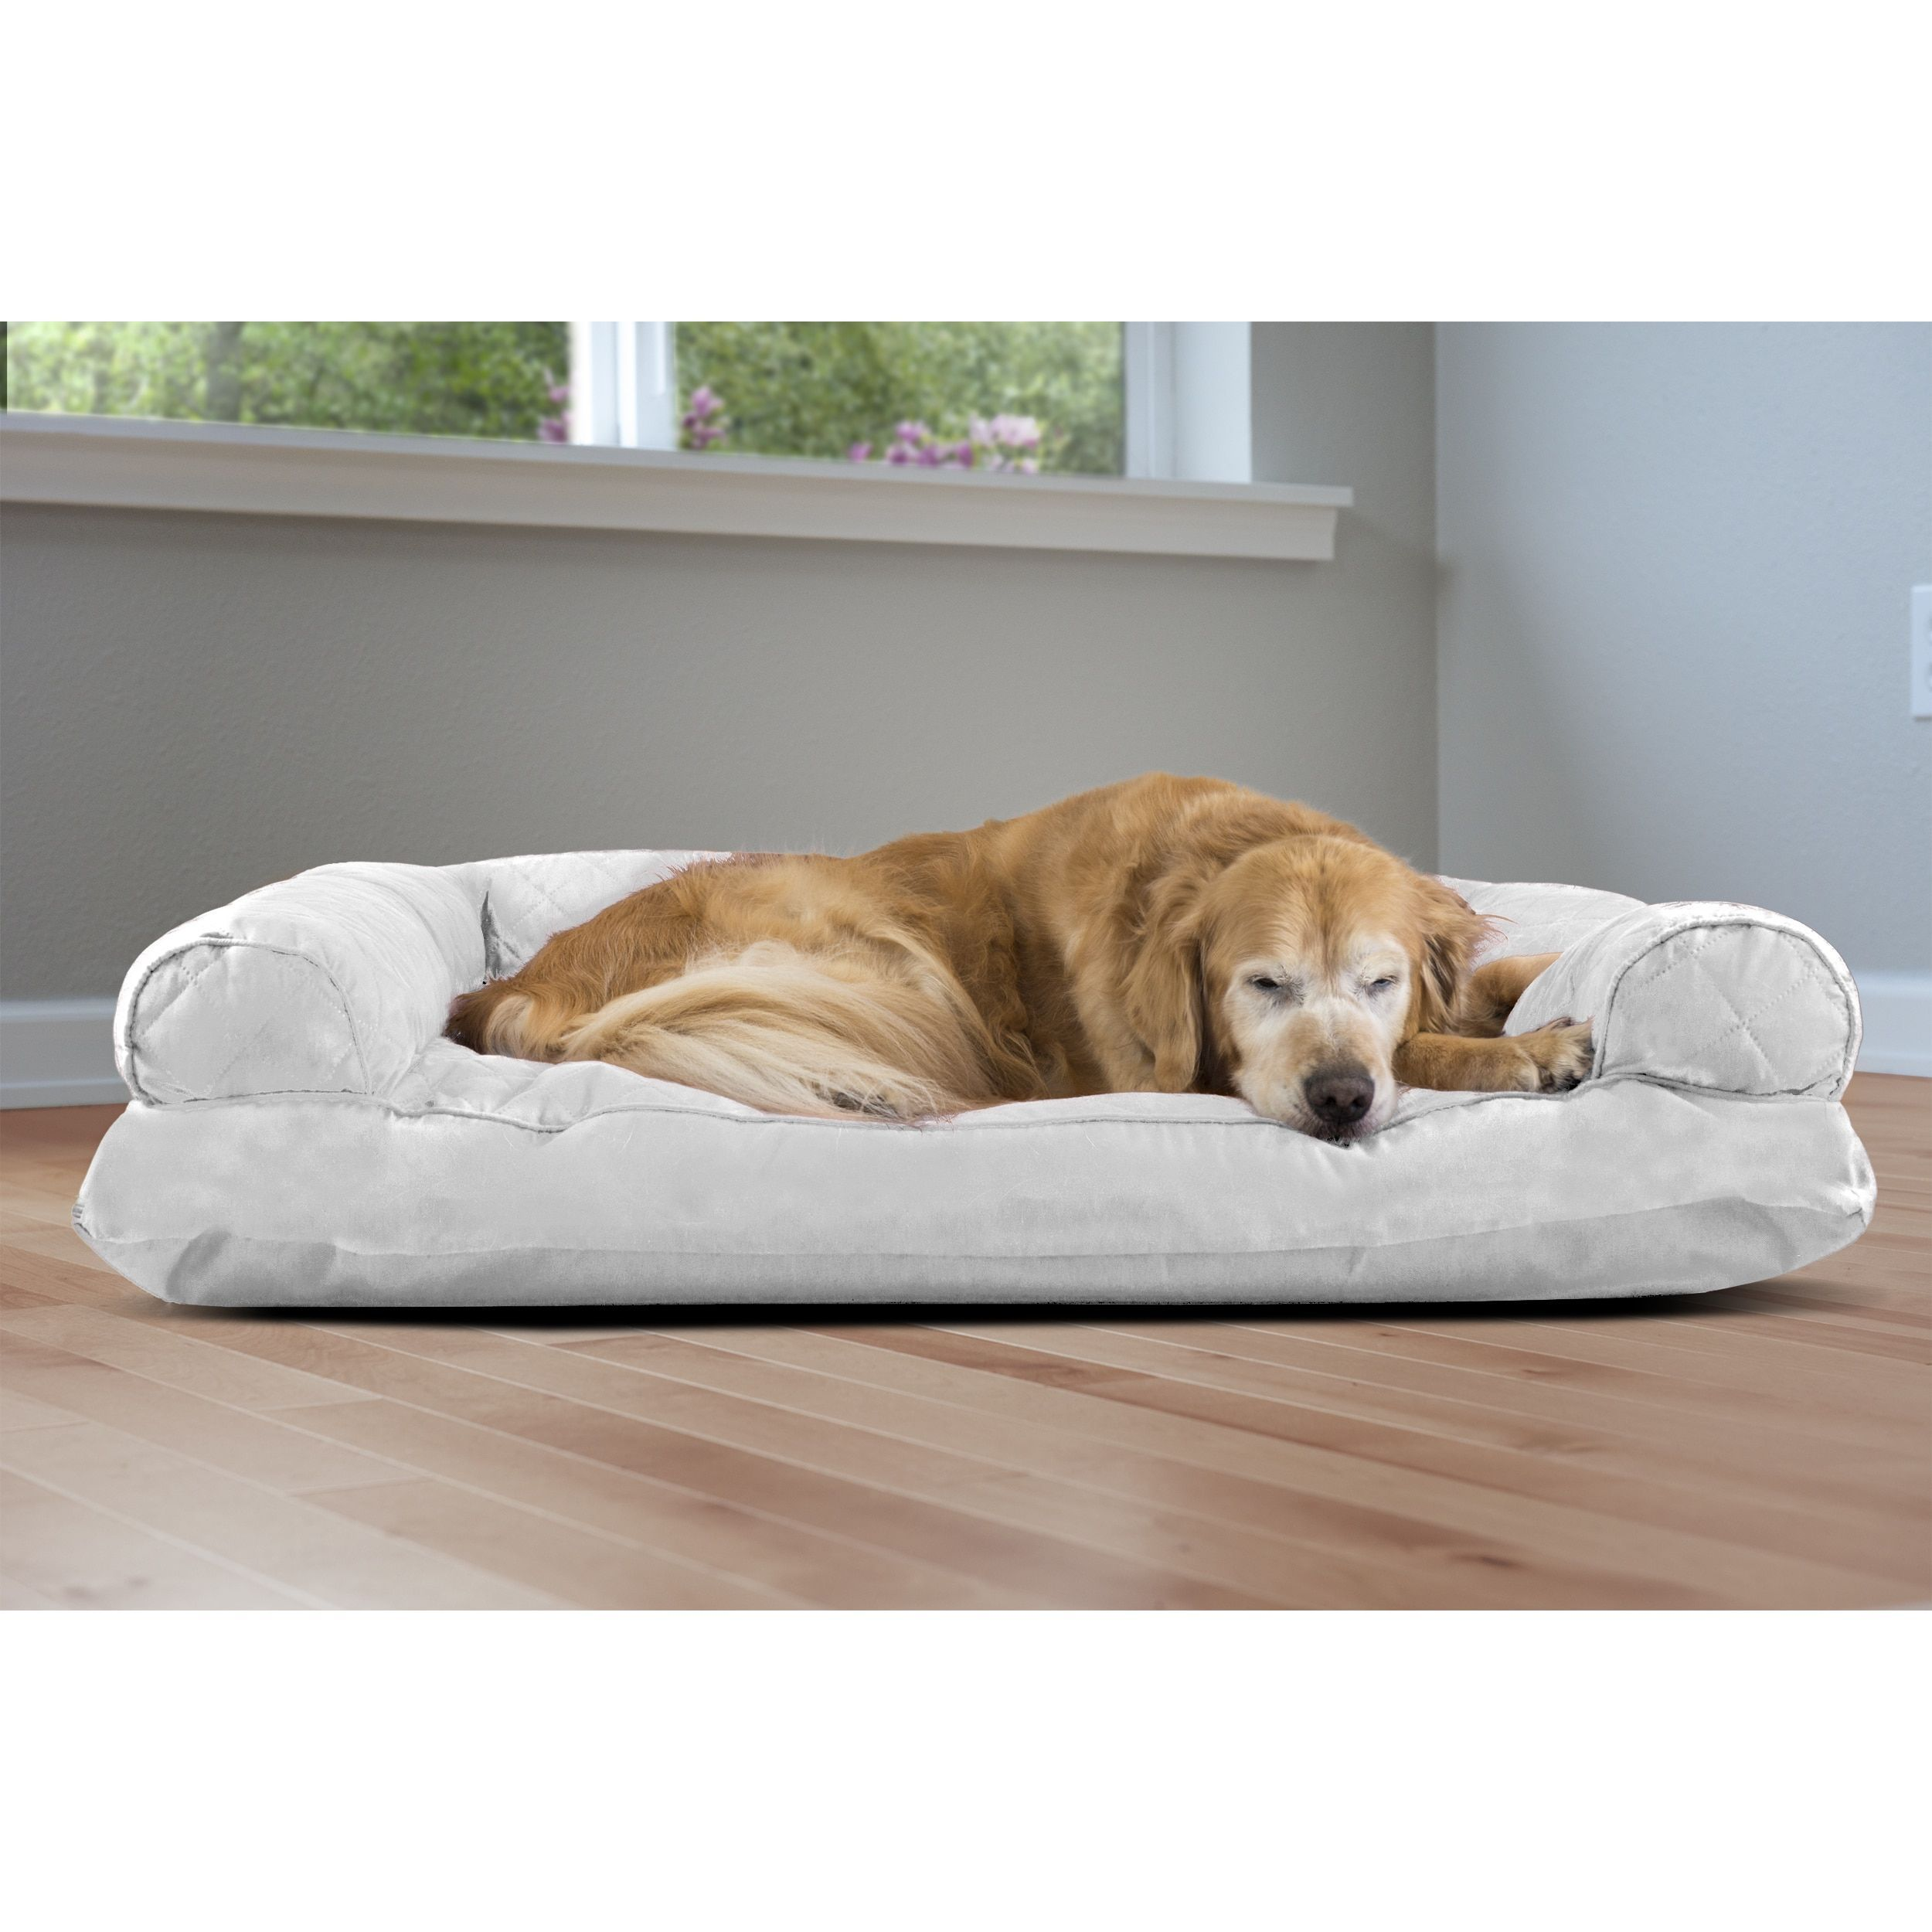 Overstock Com Online Shopping Bedding Furniture Electronics Jewelry Clothing More In 2021 Pet Sofa Bed Dog Bed Large Dog Bed